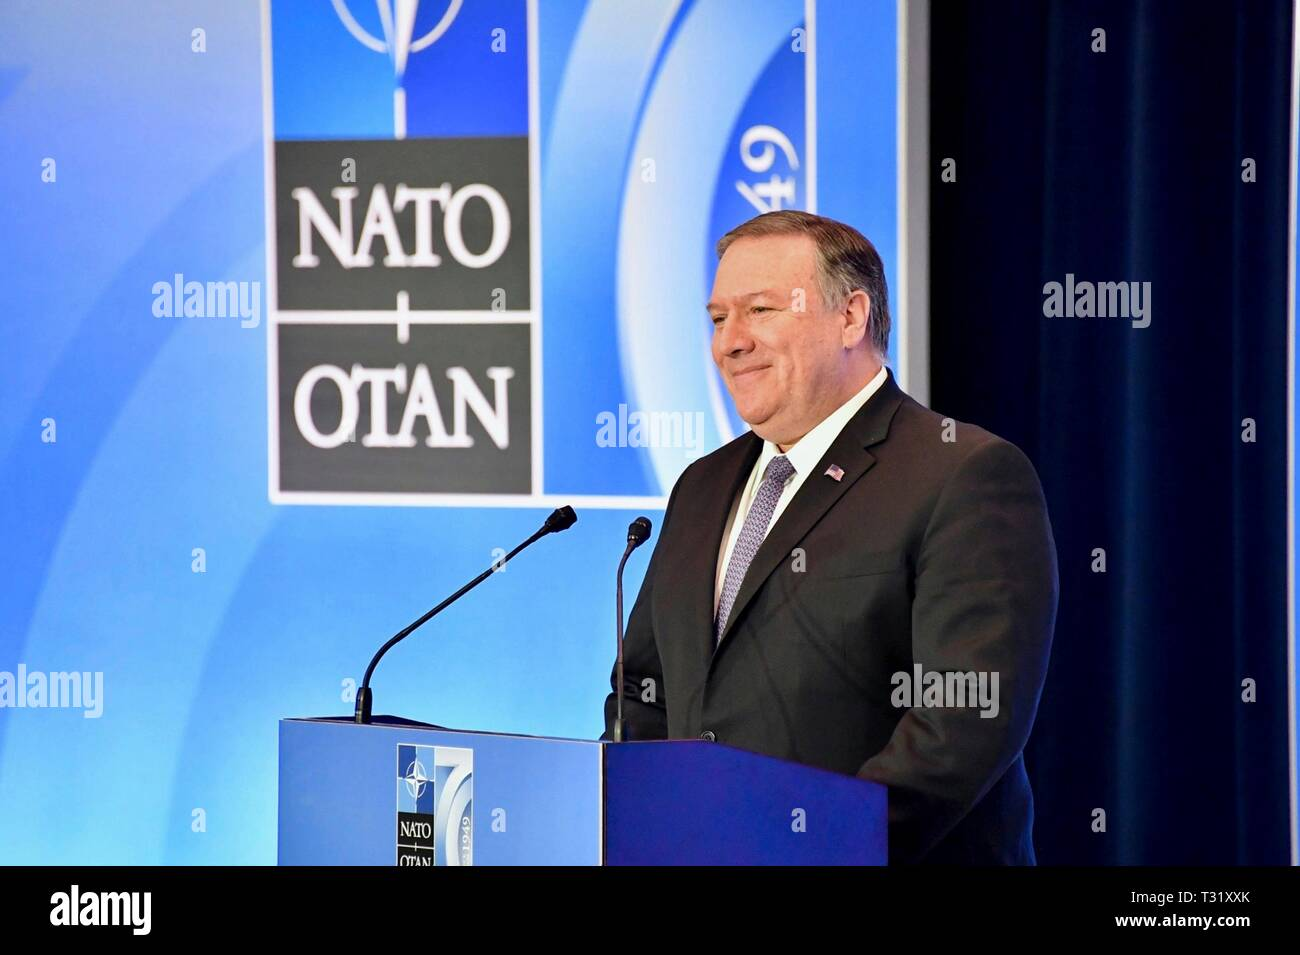 U.S. Secretary of State Mike Pompeo delivers remarks during a press conference at the NATO Ministerial in the State Department April 4, 2019 in Washington, D.C. - Stock Image